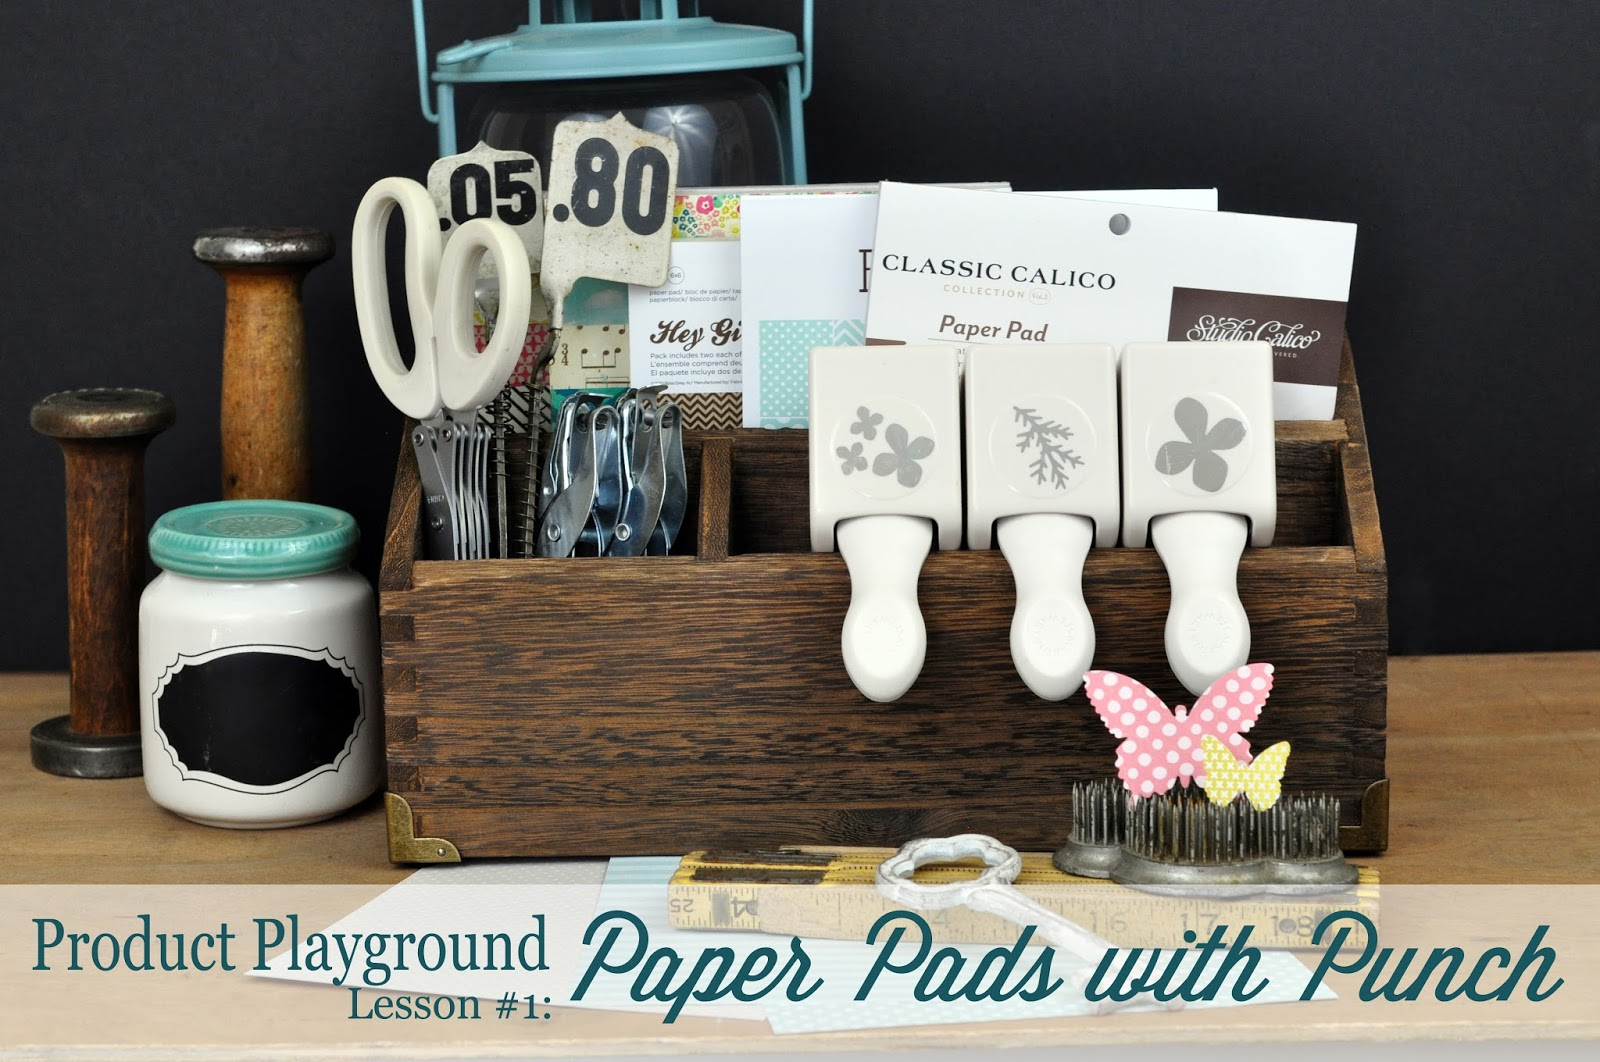 Product Playground Lesson 1 Video with Jen Gallacher http://www.bigpictureclasses.com/classes/PP-01